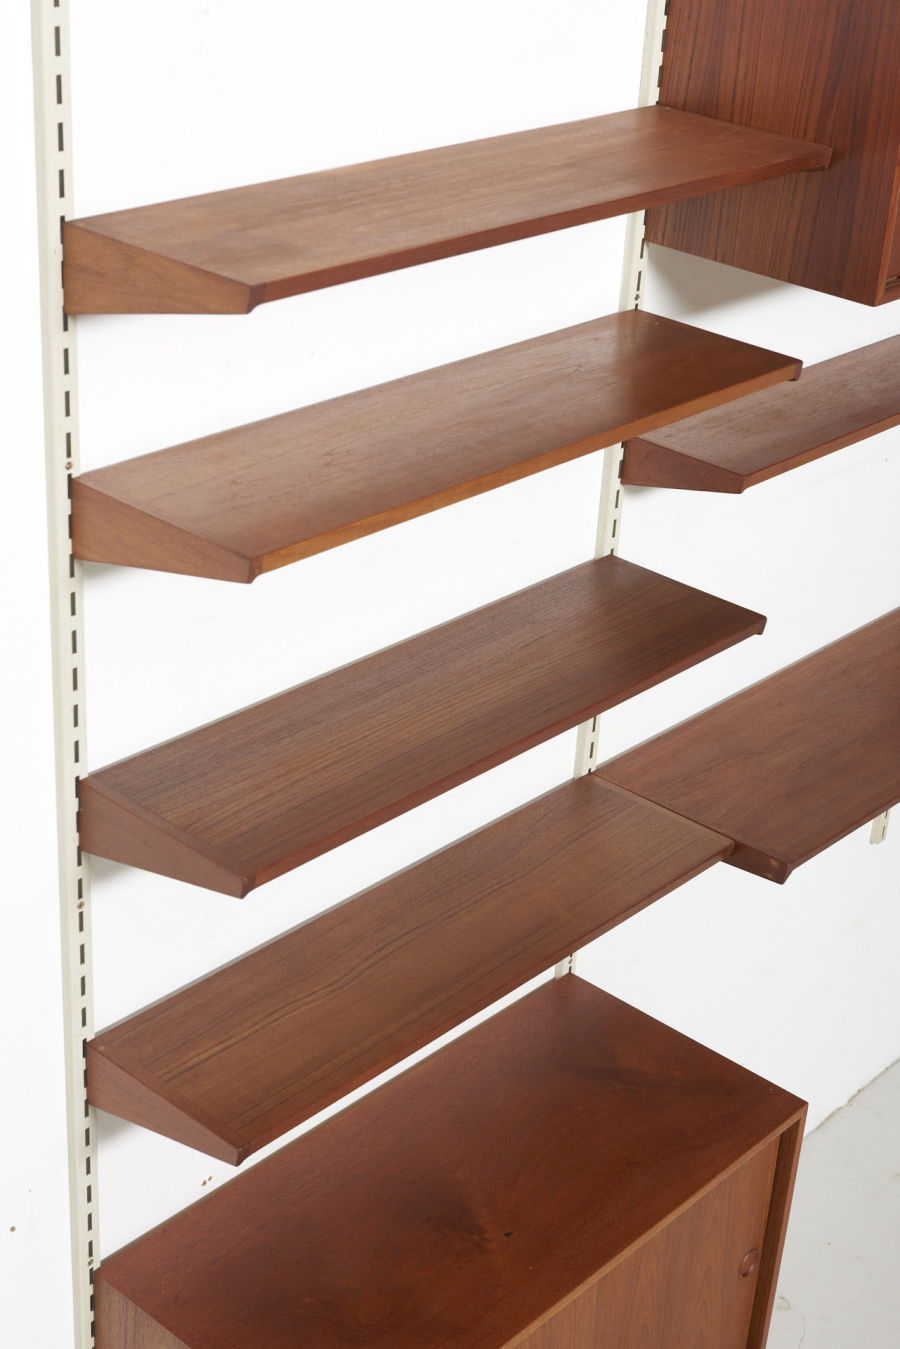 modestfurniture-vintage-1185-wall-unit-set4-kai-kristiansen-fm-teak05